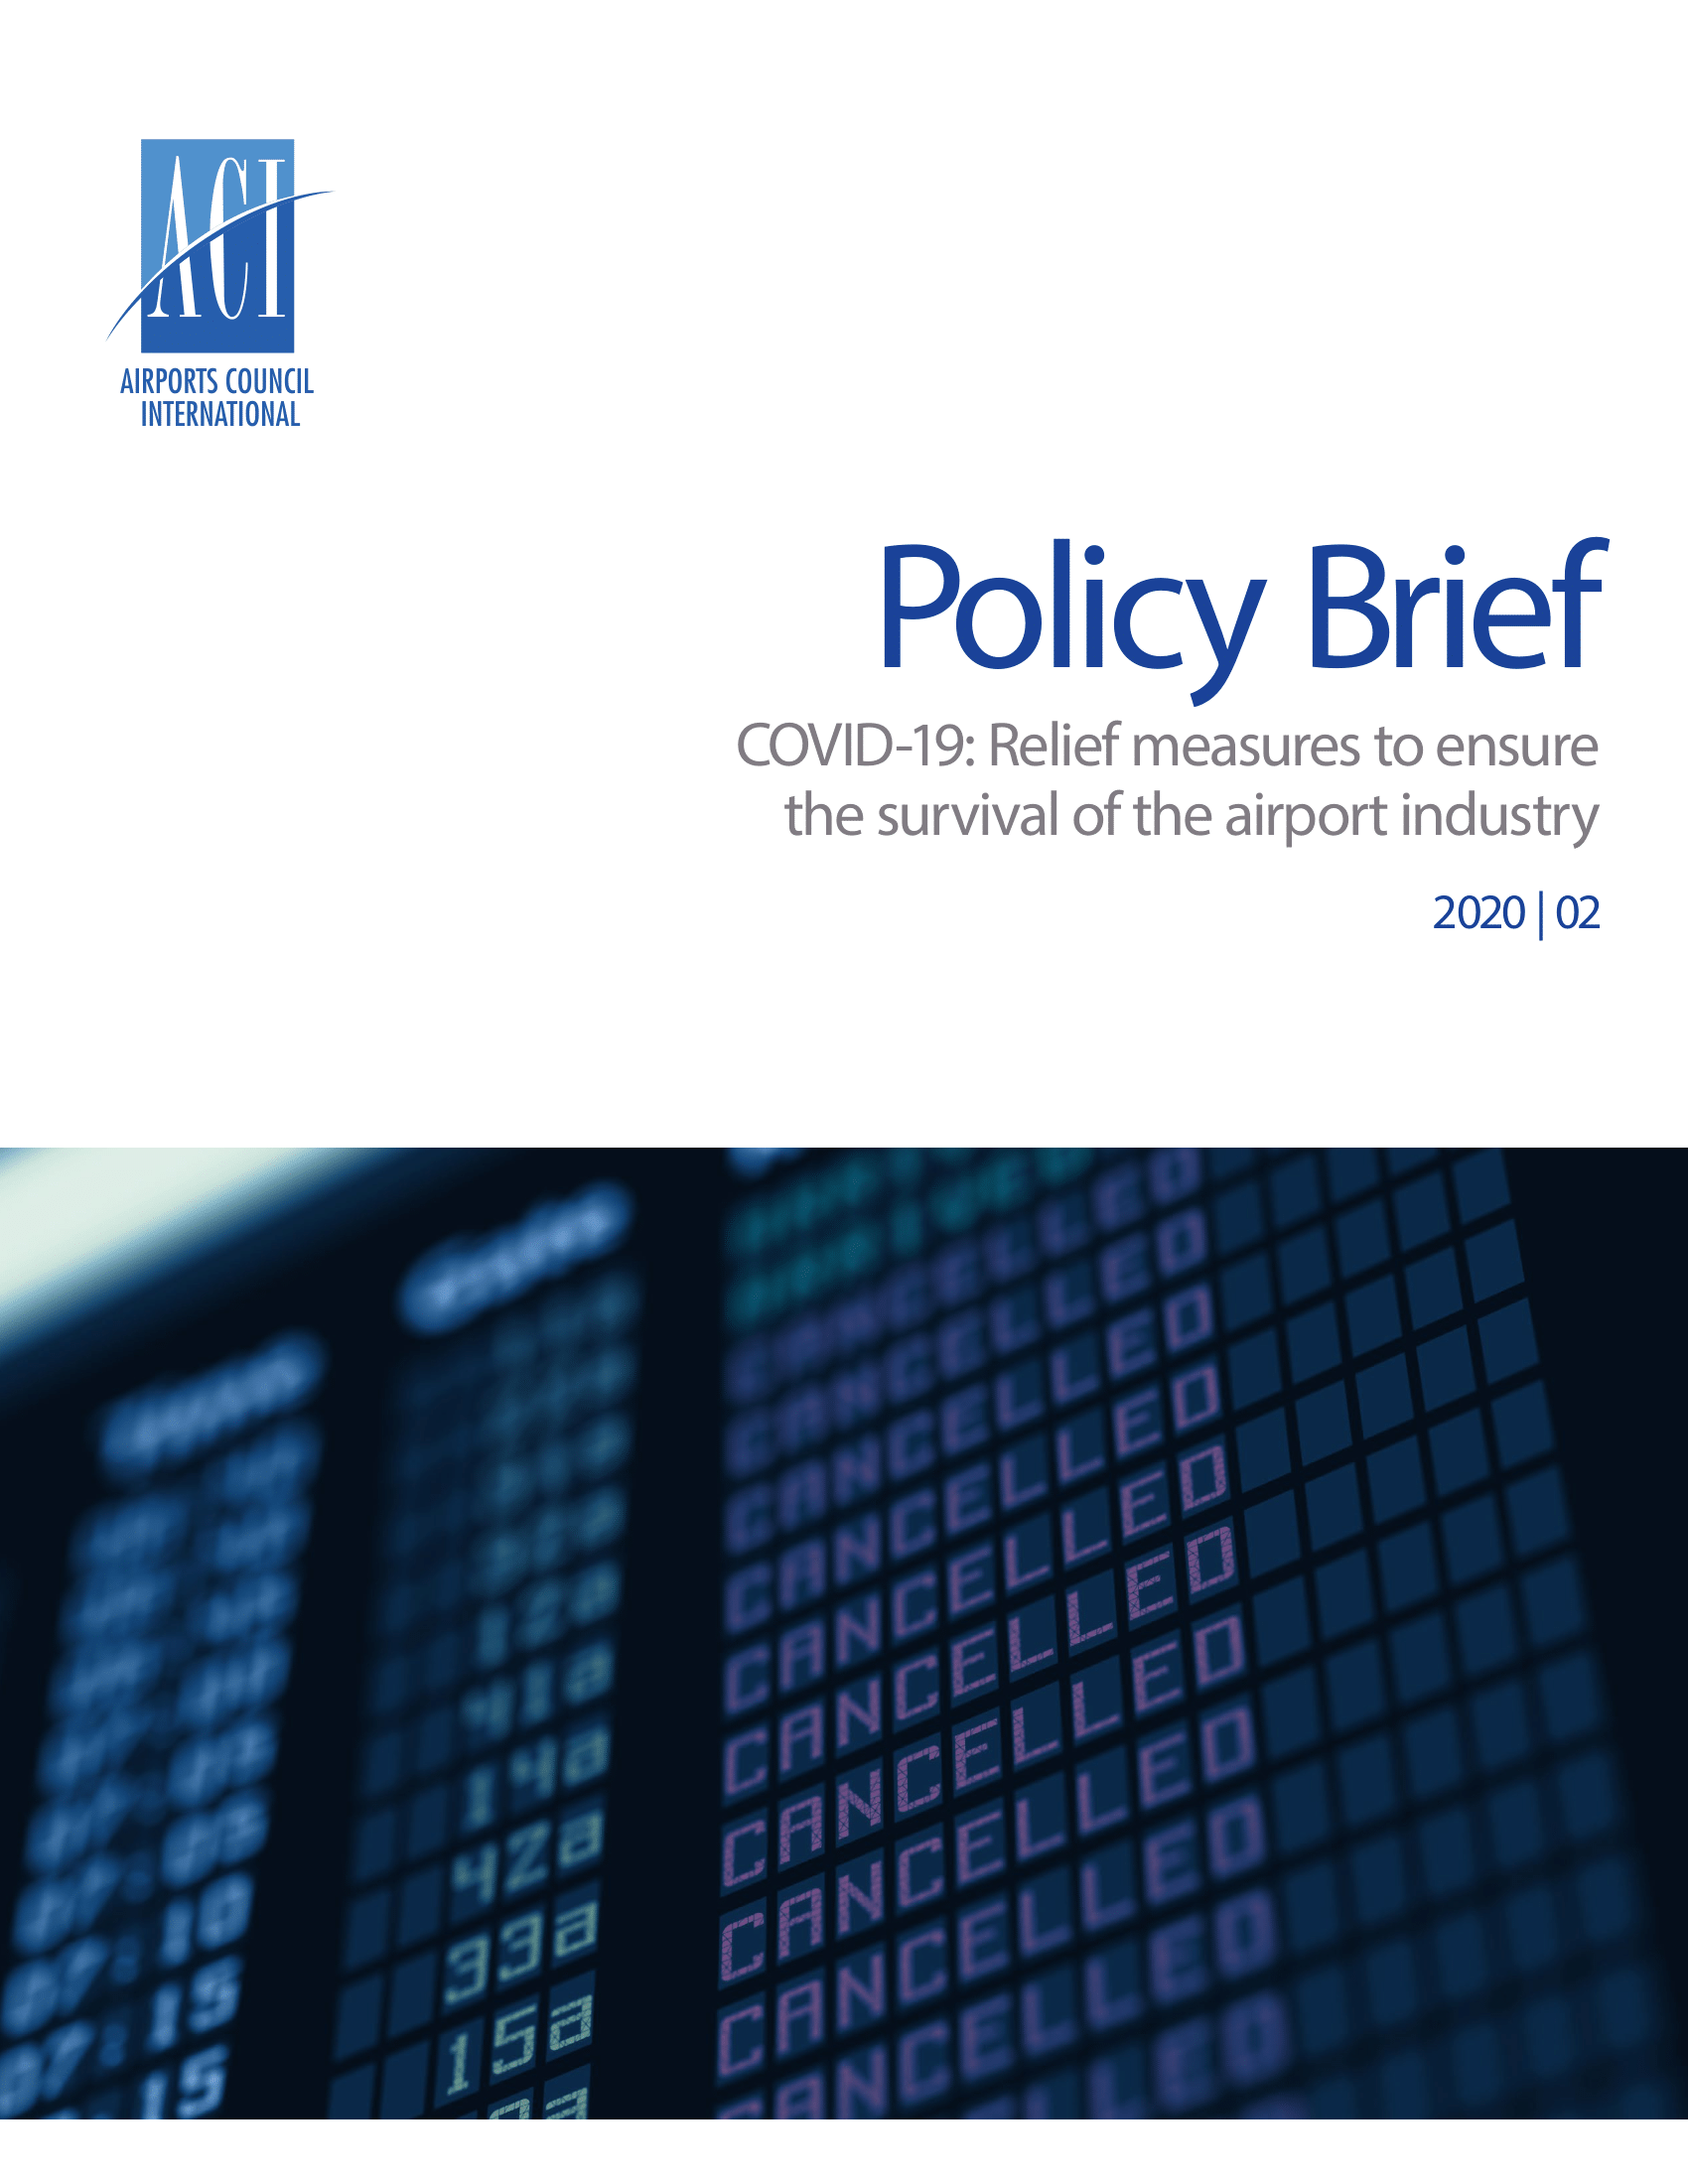 ACI Policy Brief COVID19 2nd Edition-01